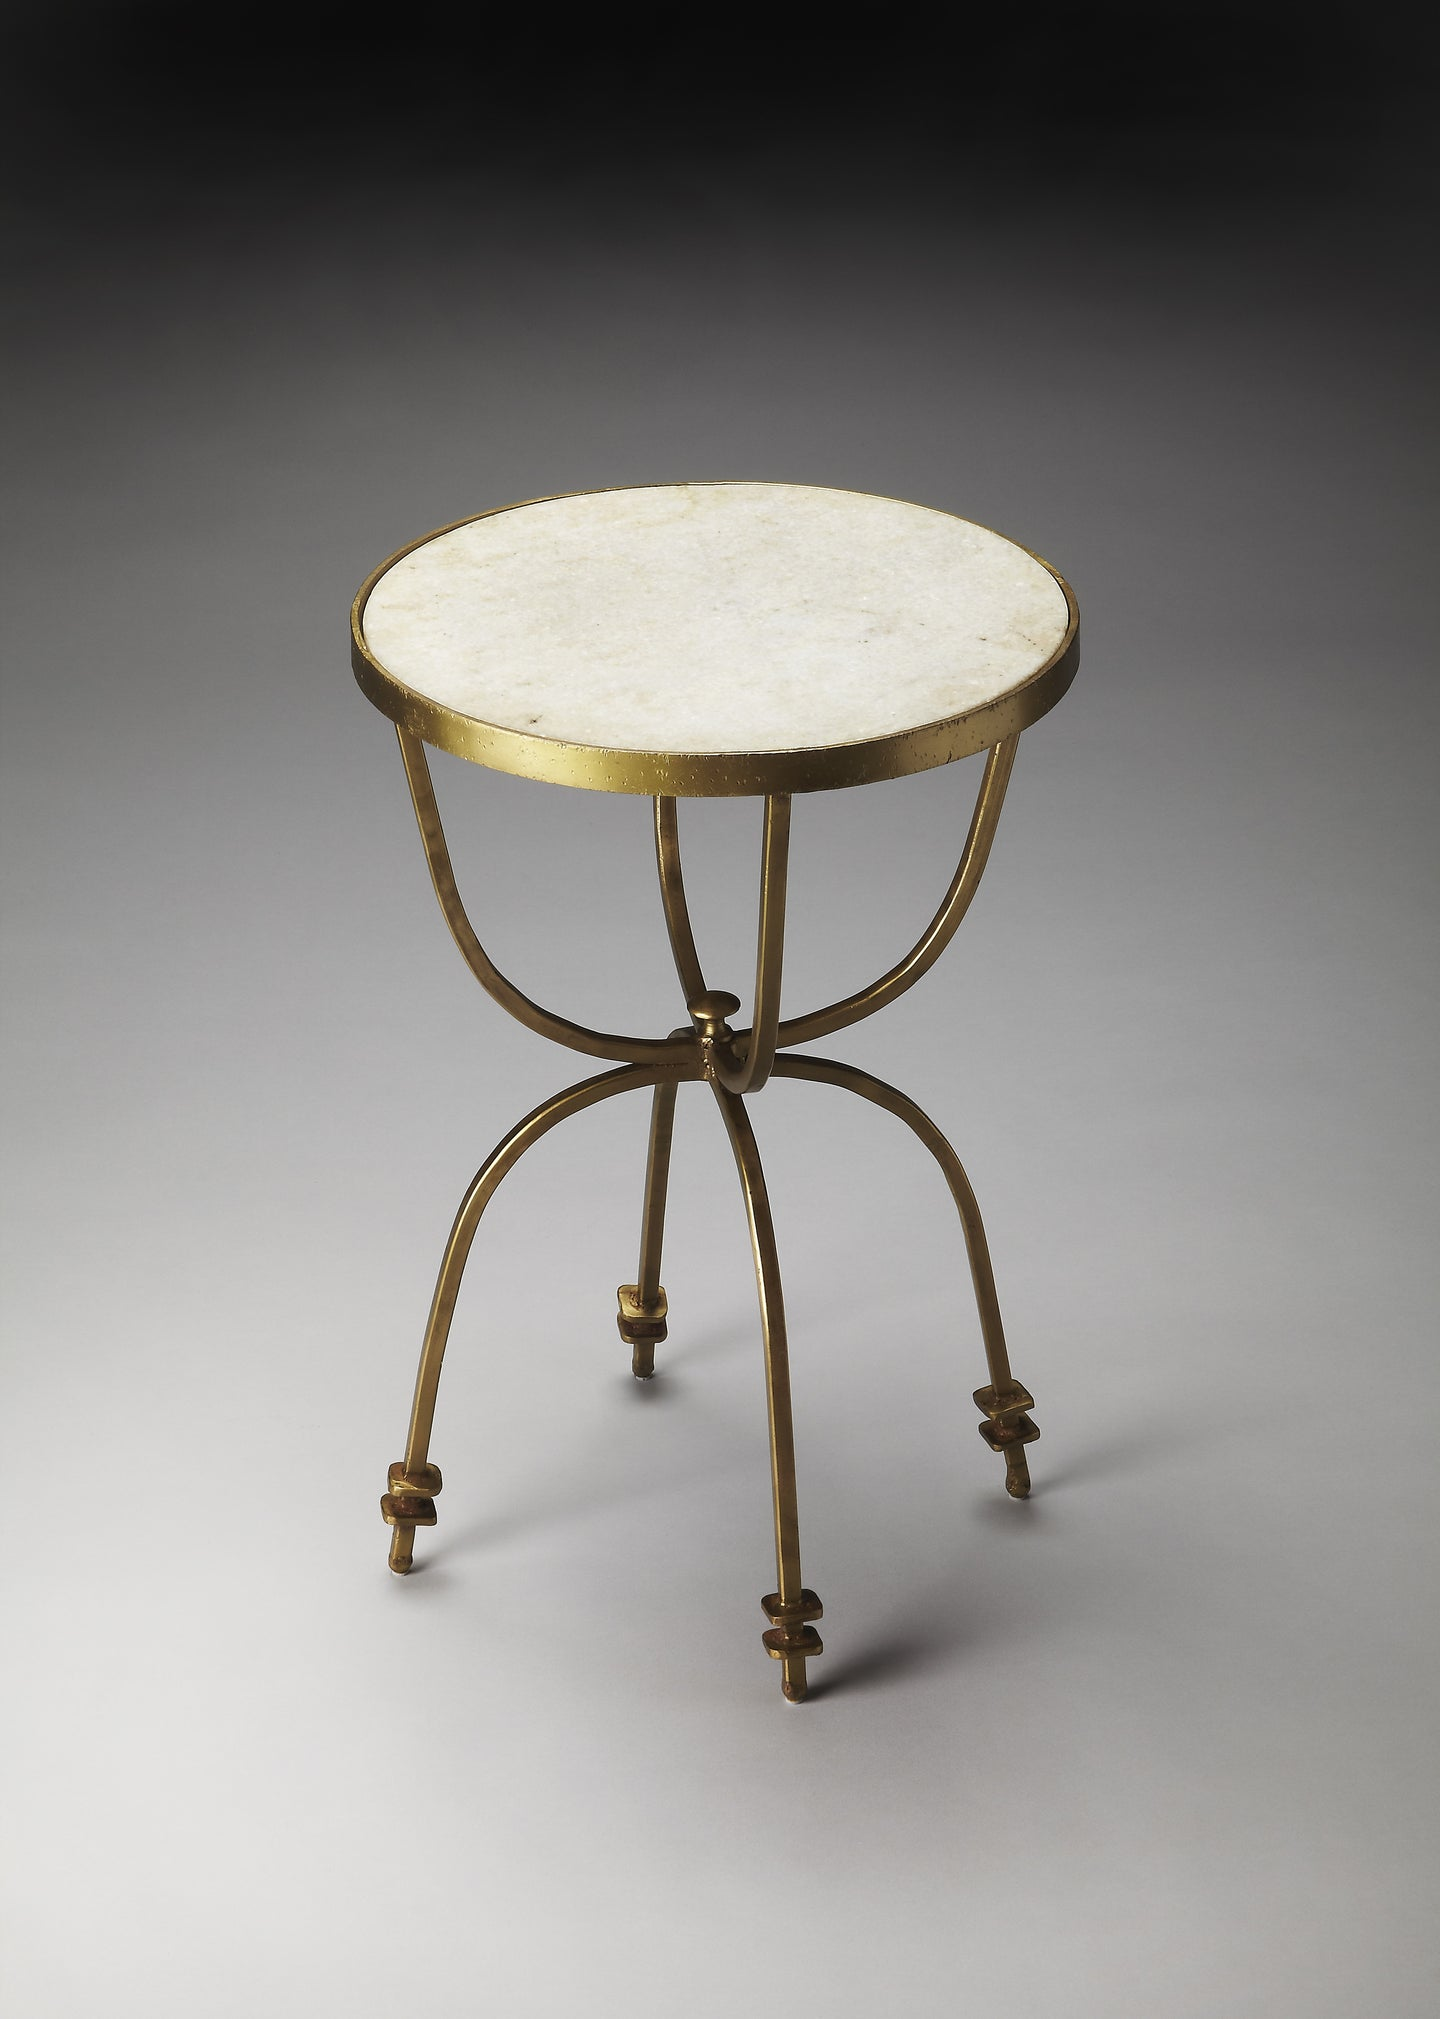 Iron and Marble Gold Accent Table by Butler Specialty Company 2877025